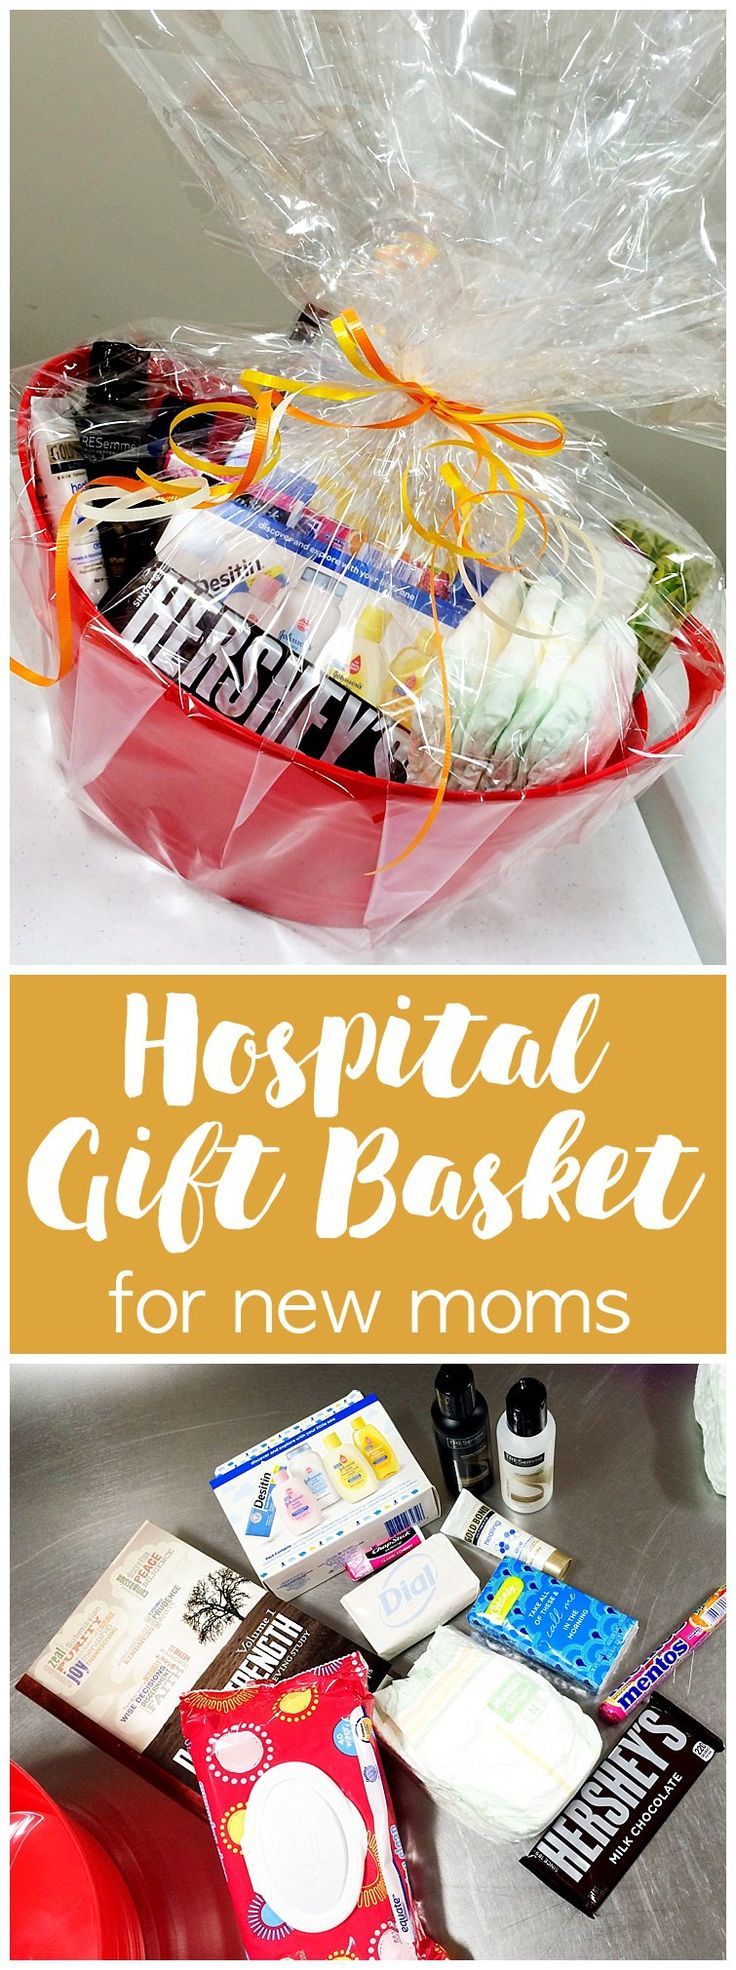 Hospital Gift Basket... for a new mom! - Six Clever Sisters